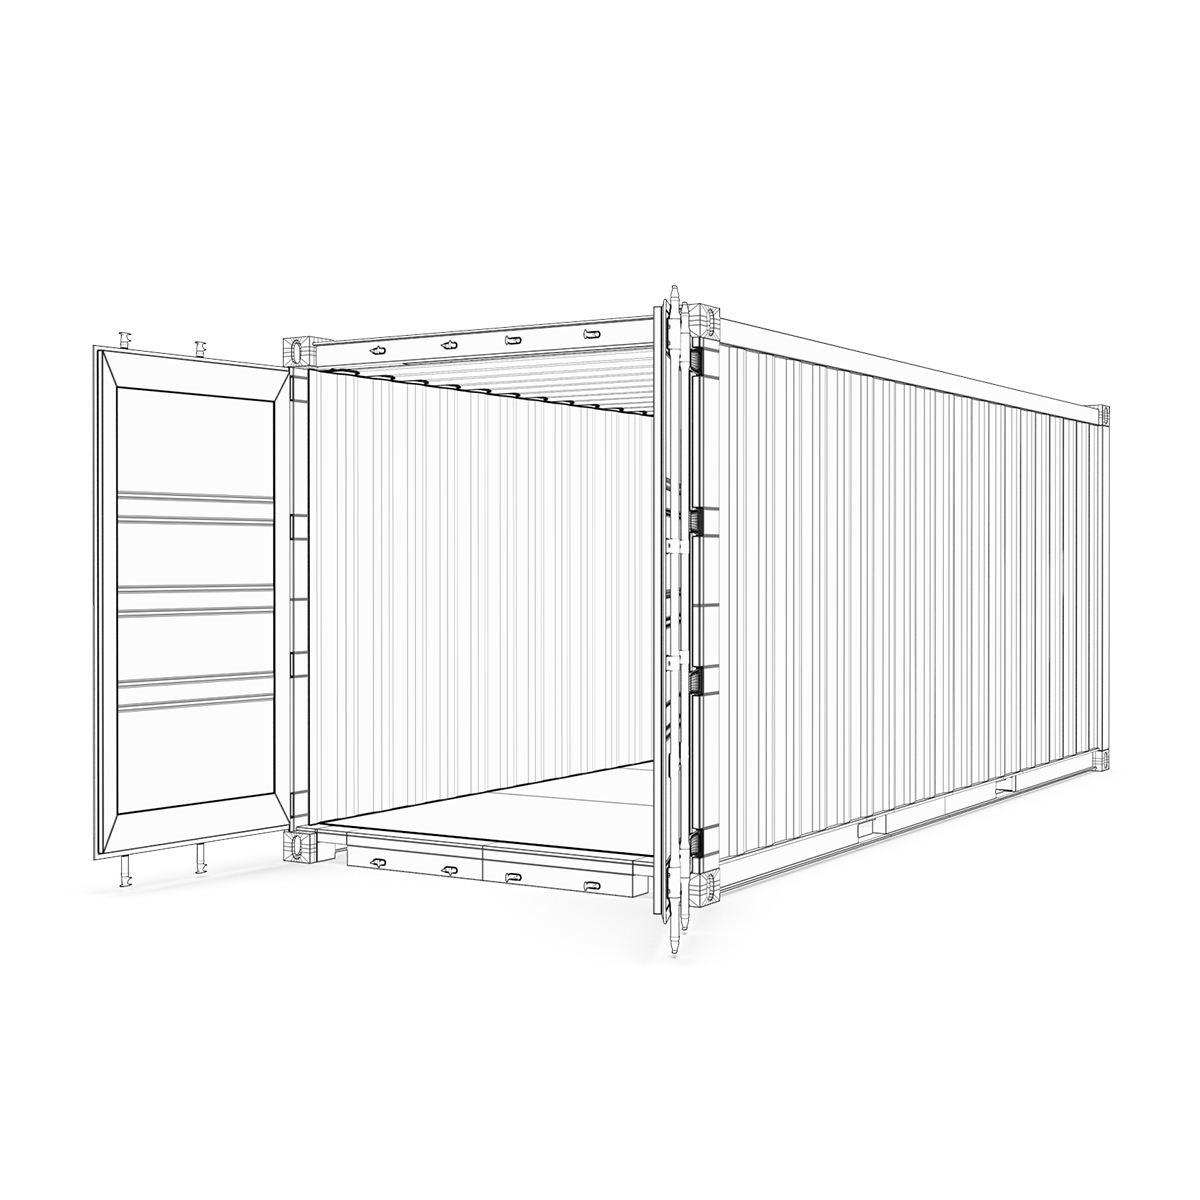 20 feet msc standard shipping container 3d model 3ds max fbx ma mb obj 278386